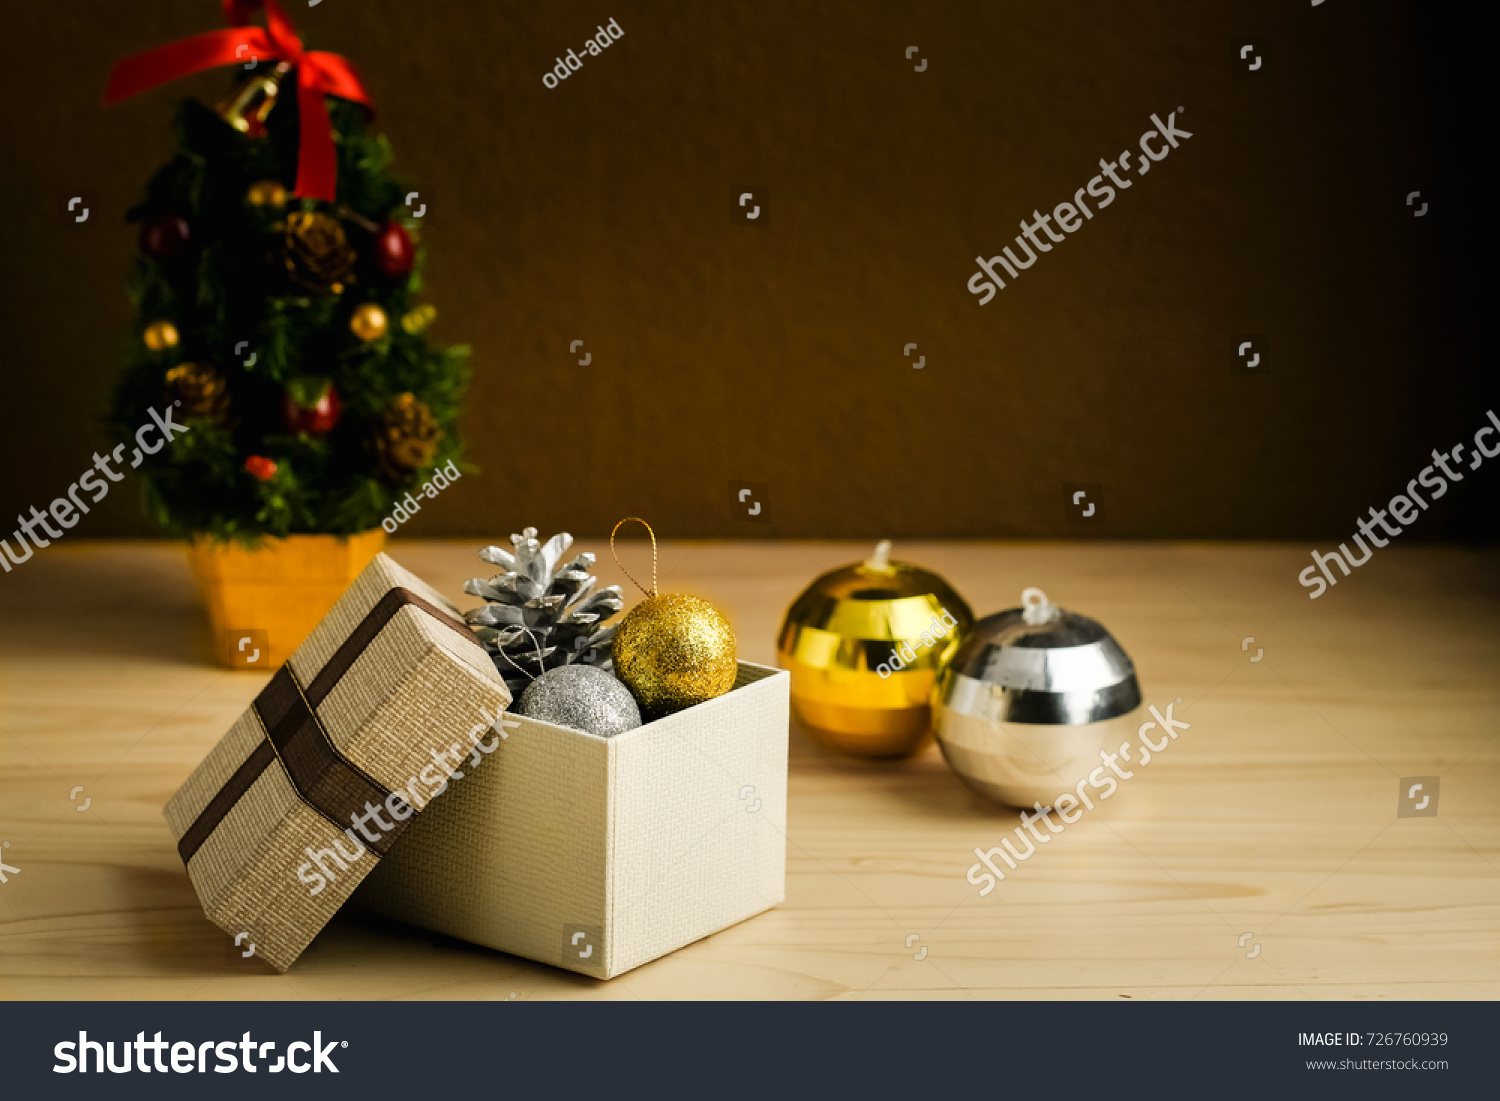 Gift Boxes Gold Silver Balls Christmas Stock Photo (Edit Now ...